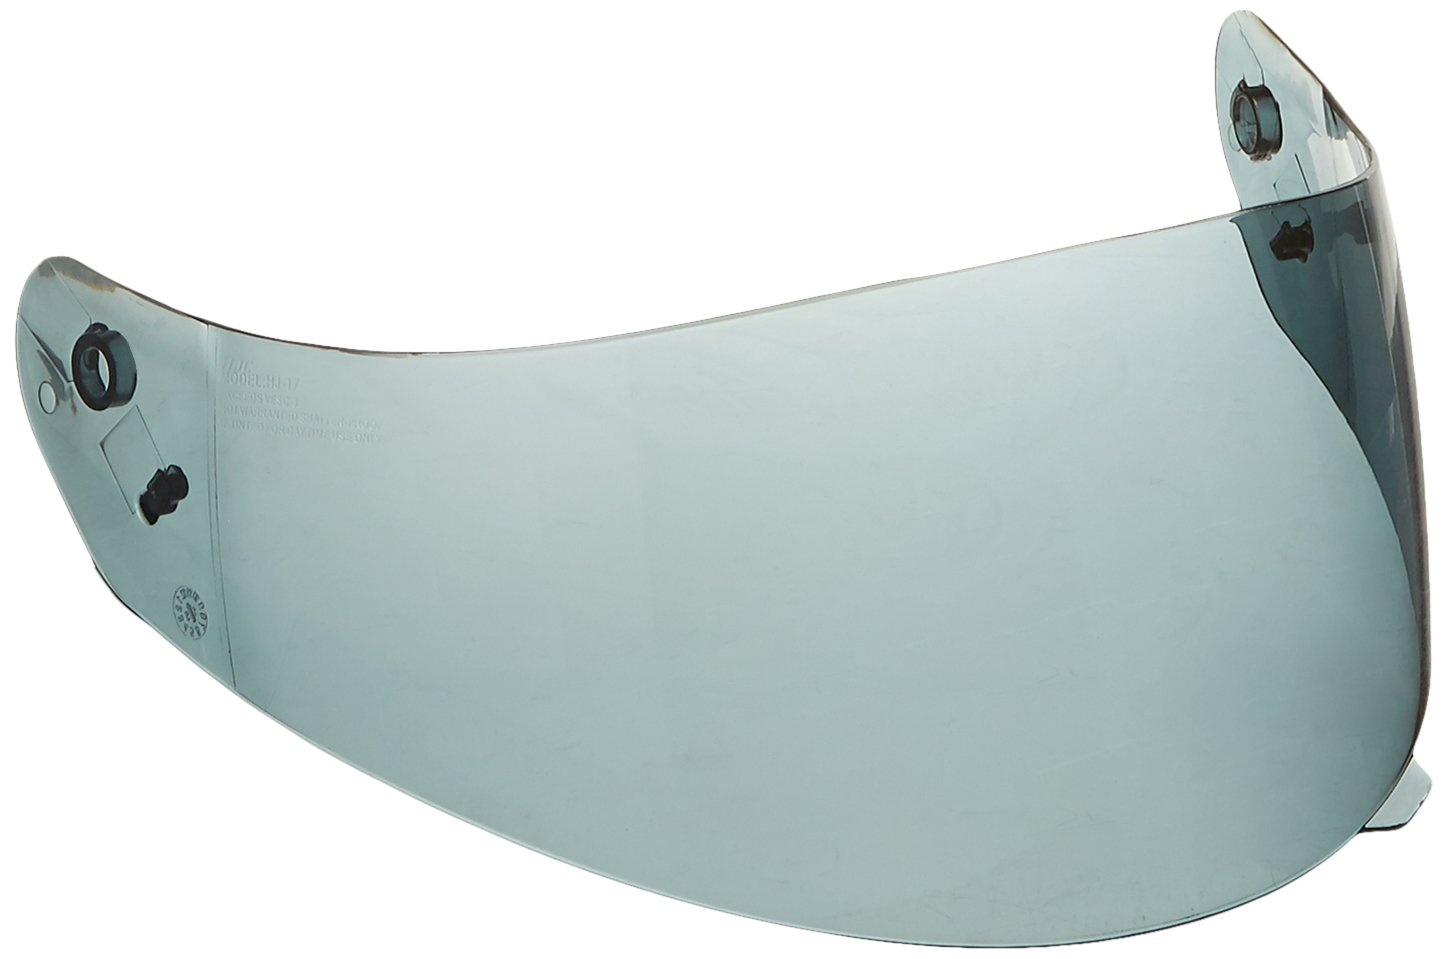 HJC Helmets HJ-17 Unisex-Adult Anti-Scratch Replacement Face Shield (Clear, One Size) 956-212